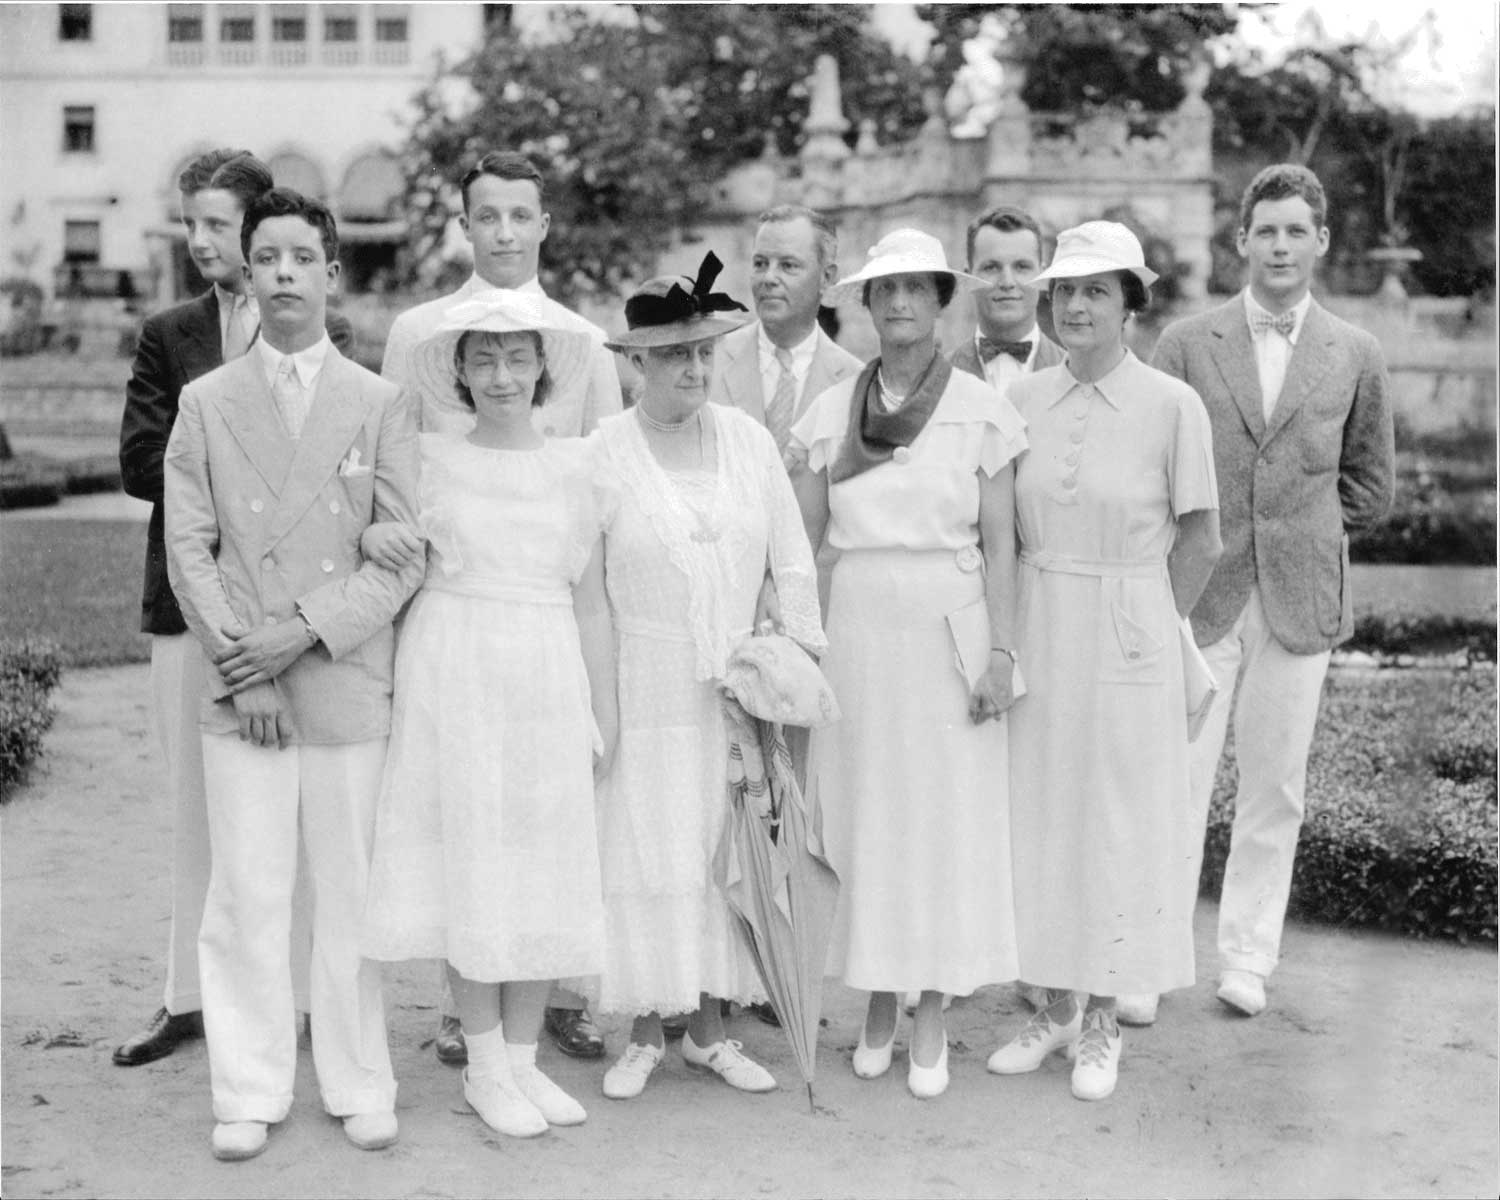 Learn about the Deering Family at The Deering Estate